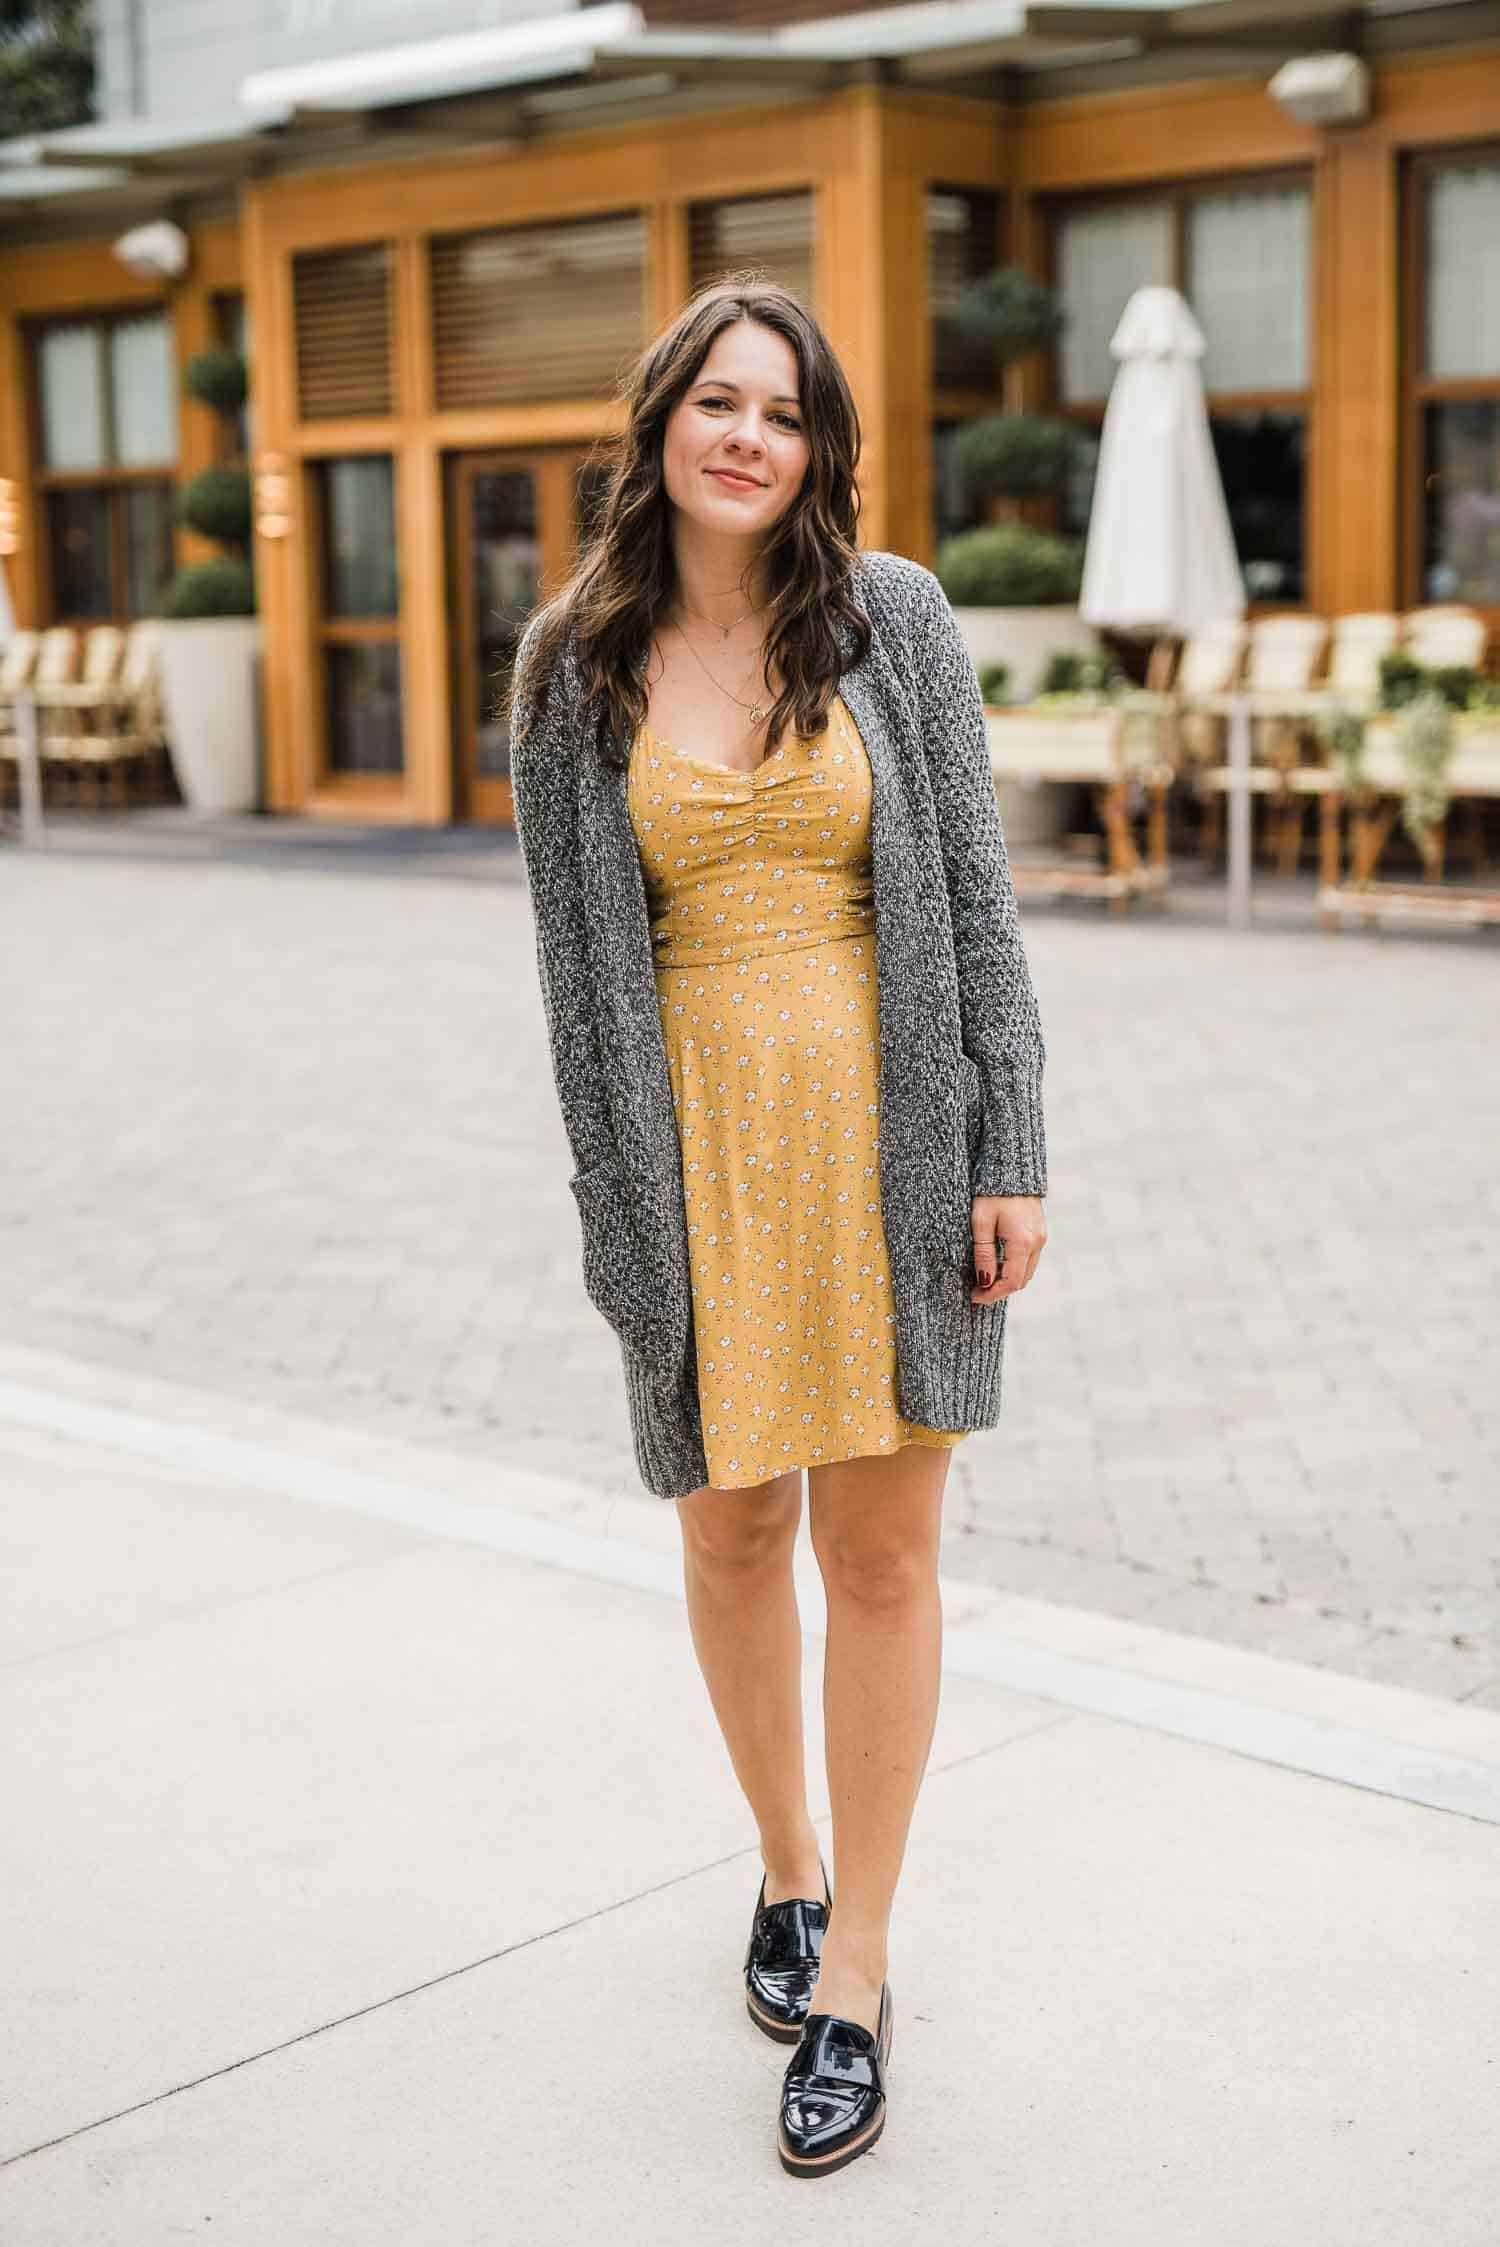 summer dress with cardigan, how to transition your summer dresses into fall - My Style Vita